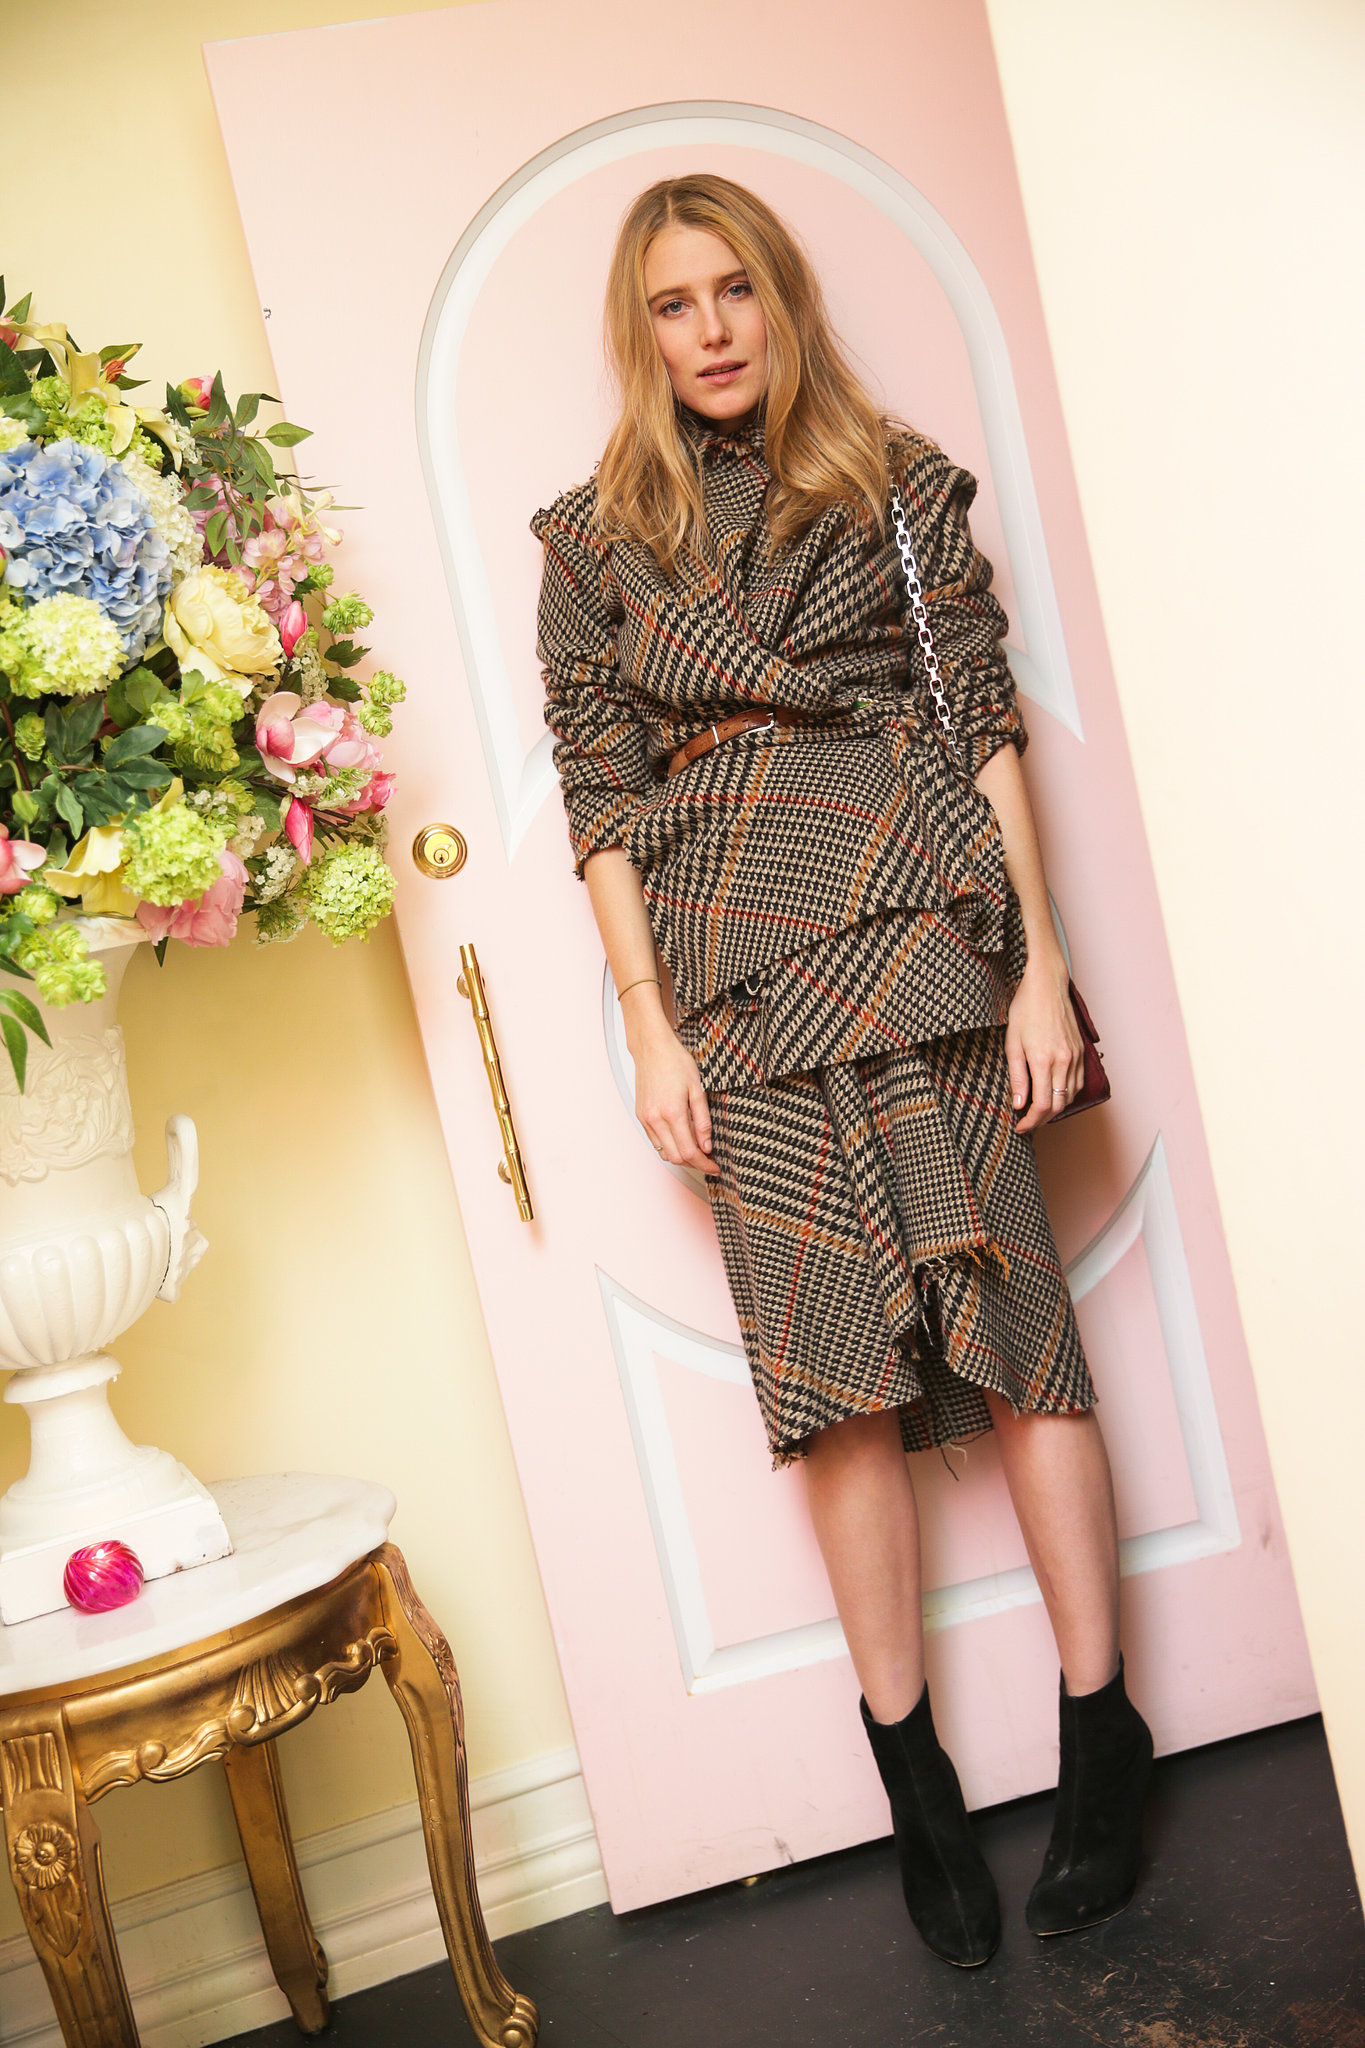 Dree Hemingway at the Style.com issue launch party.